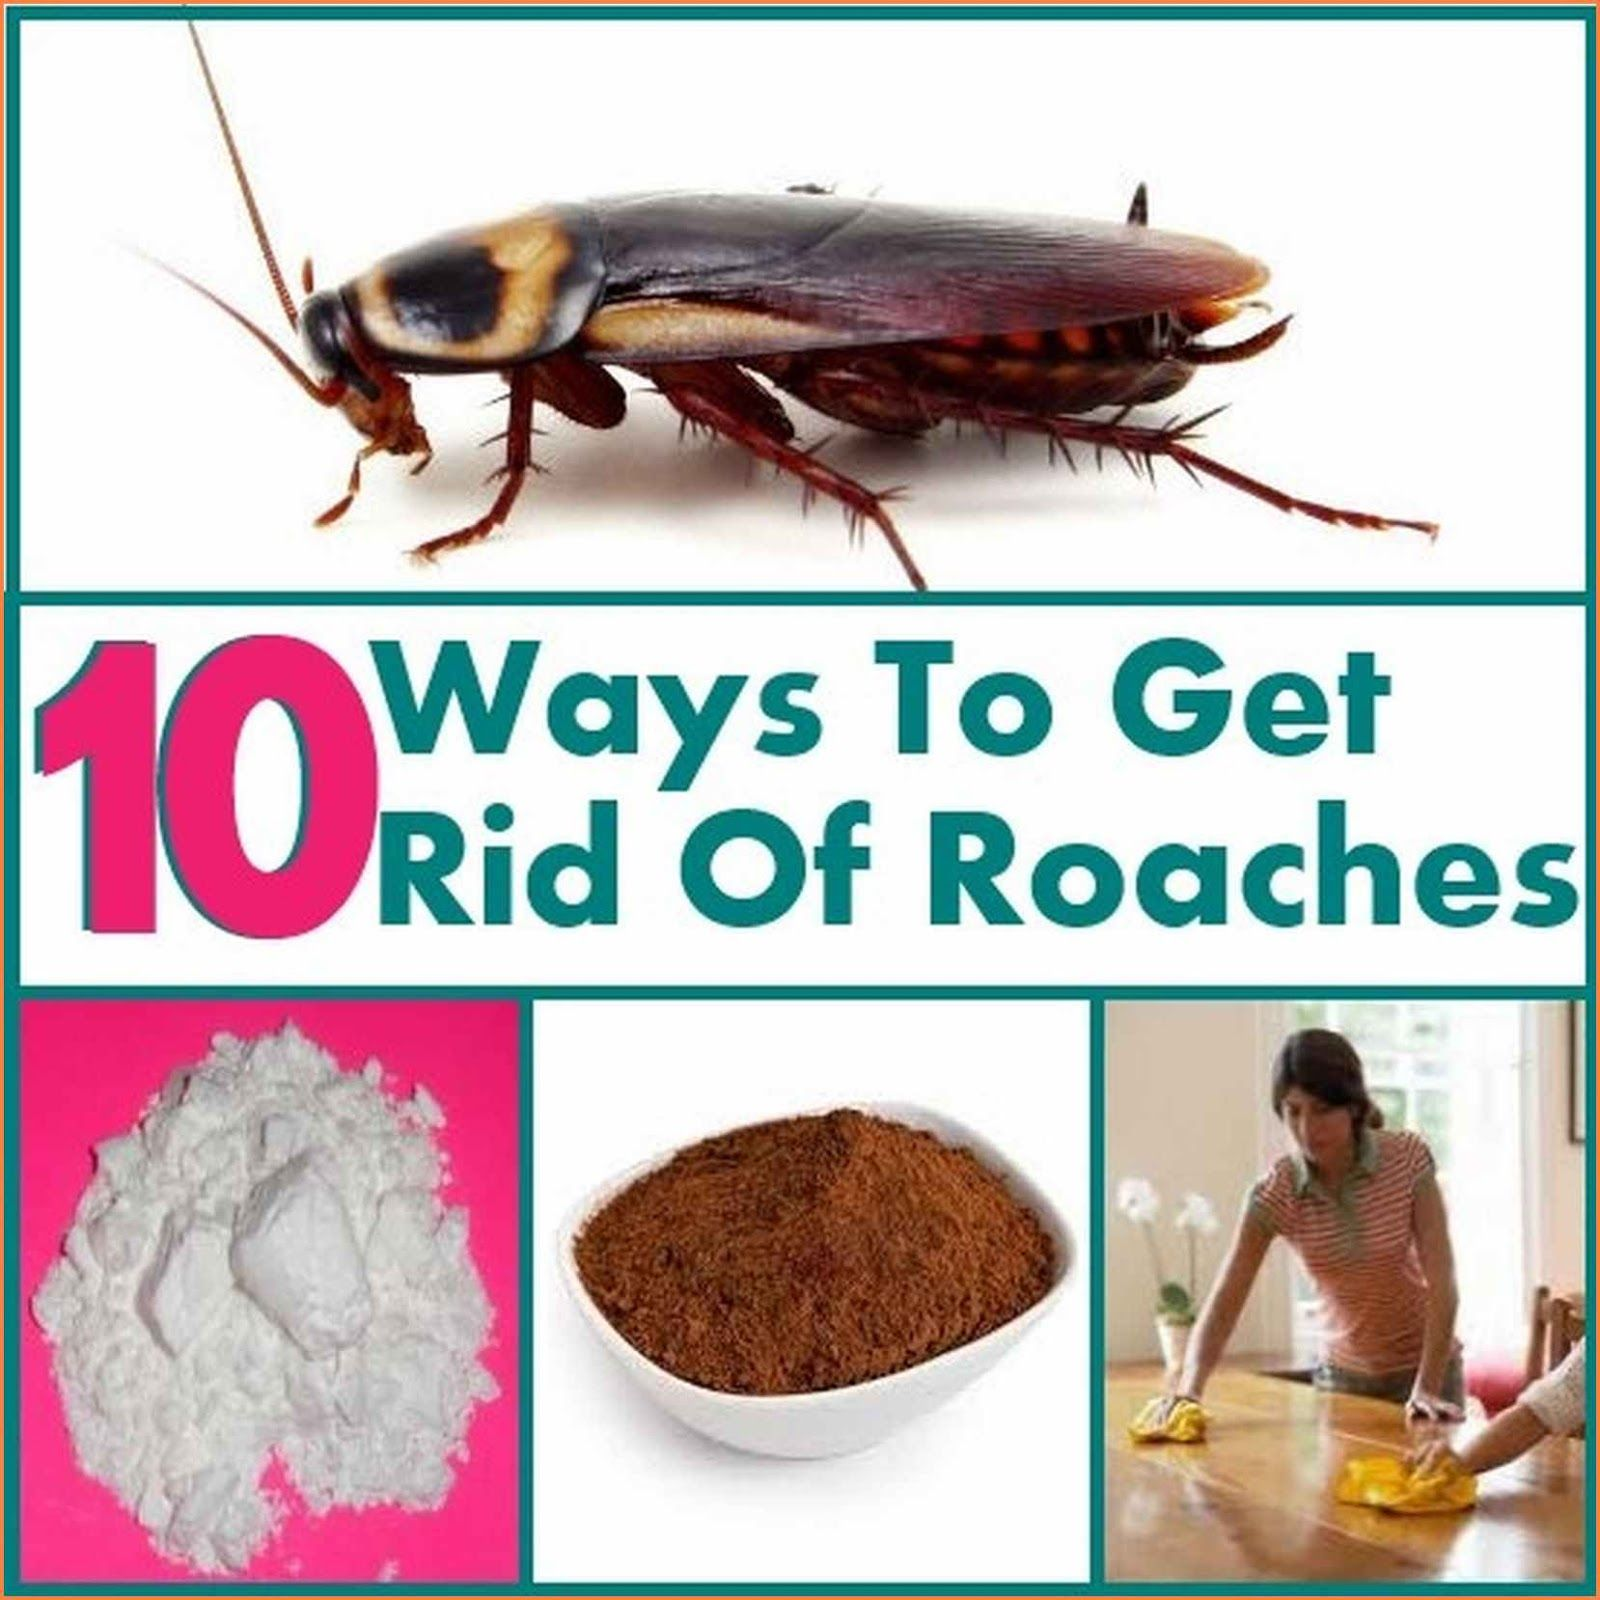 How To Get Rid Of Household Roaches | How To | Pinterest | Roaches ...